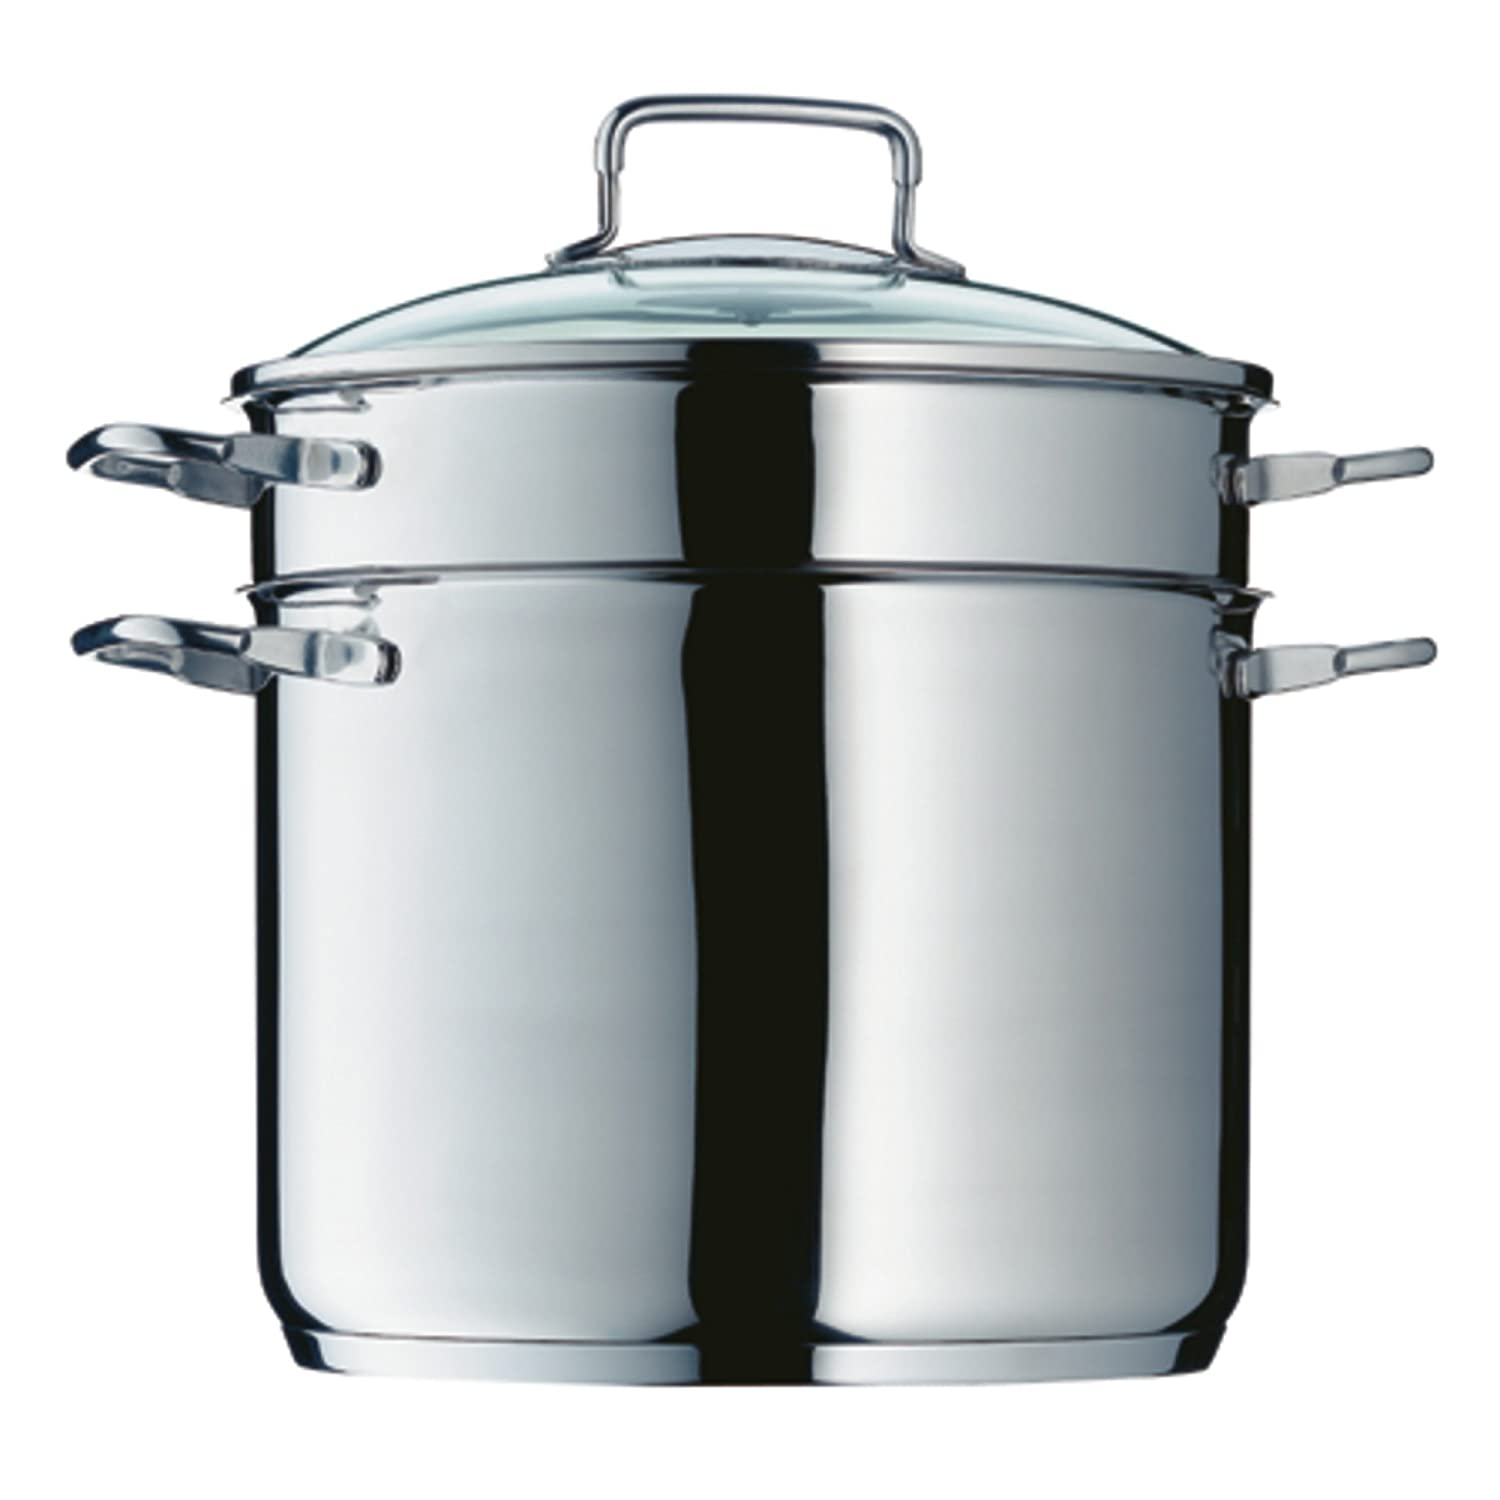 WMF Pasta Pot Ø 24 cm approx. 7l pouring rim glass lid Cromargan stainless steel brushed suitable for all stove tops including induction dishwasher-safe 0724919990 07.2491.9990